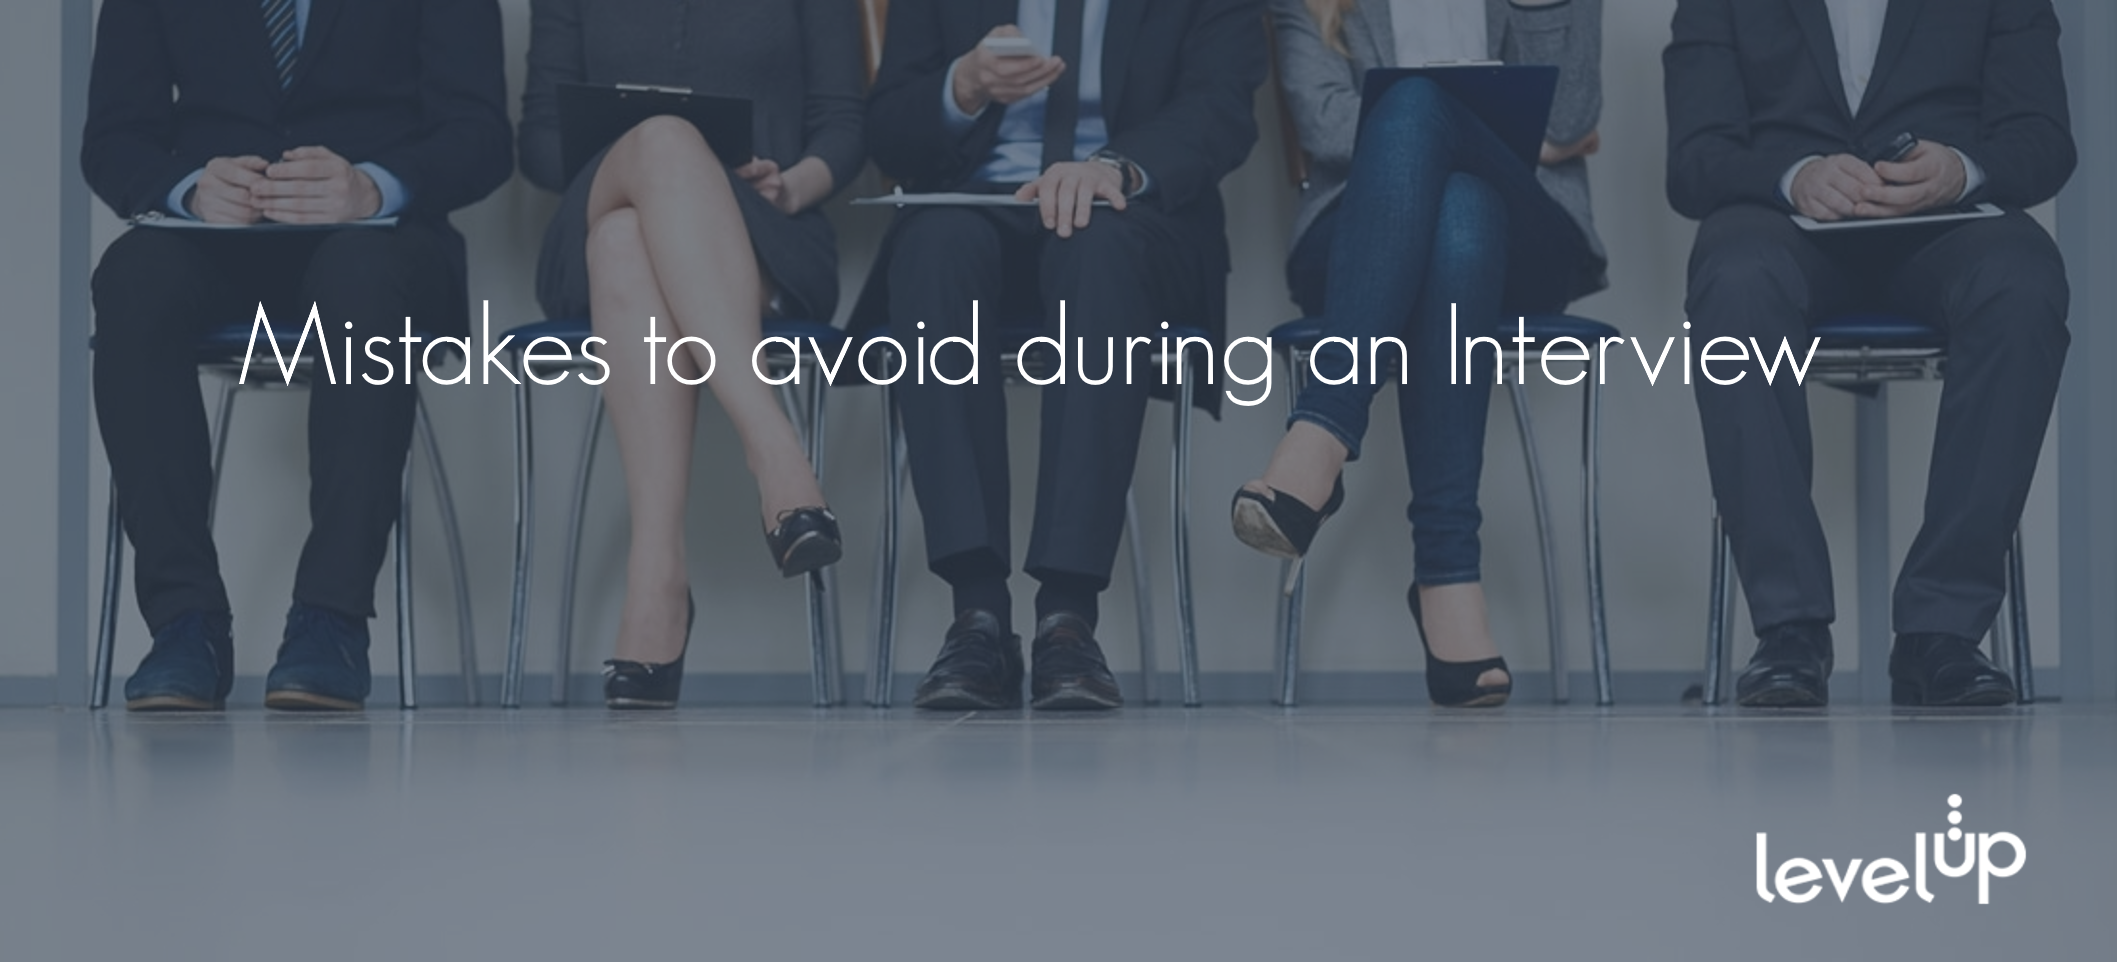 mistakes to avoid during an interview.png